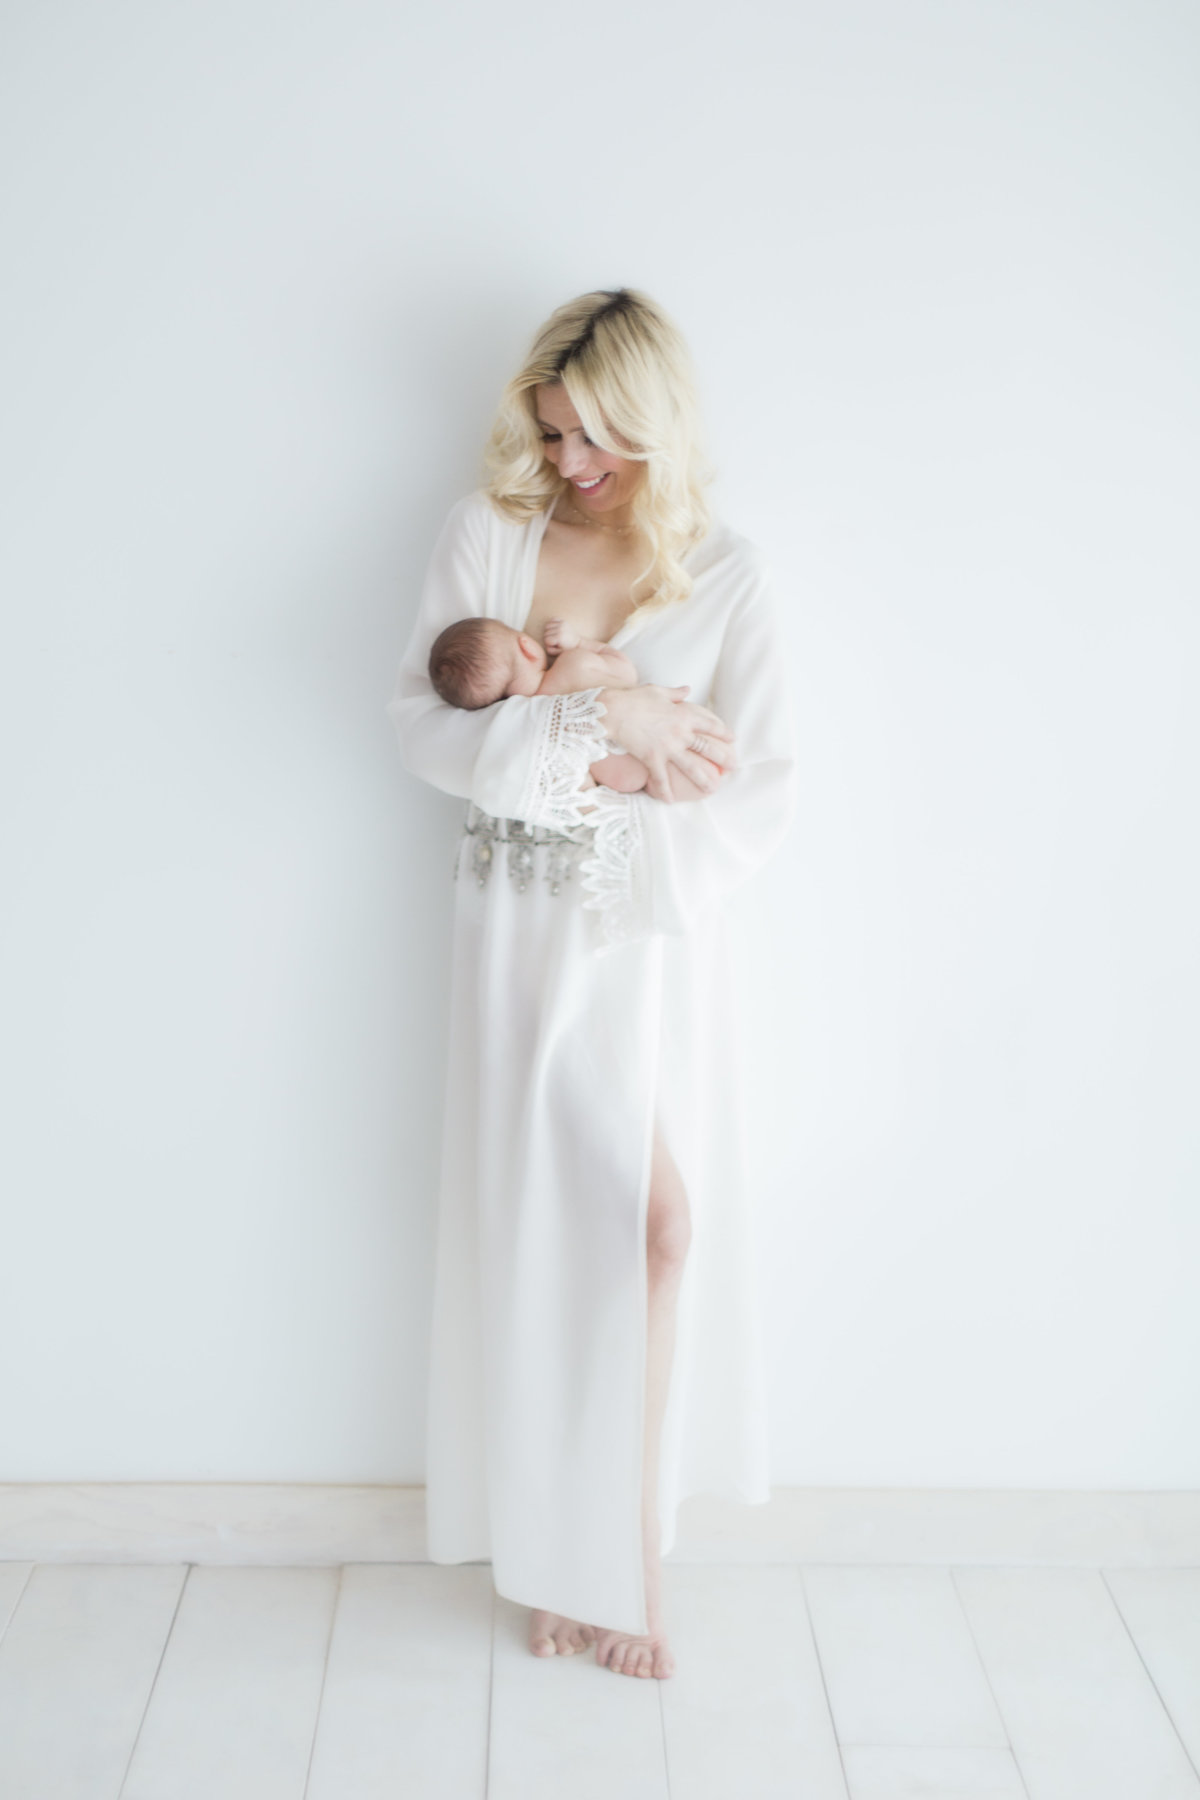 Los-Angeles-Newborn-Photographer-Christine-Sara-Sage-15